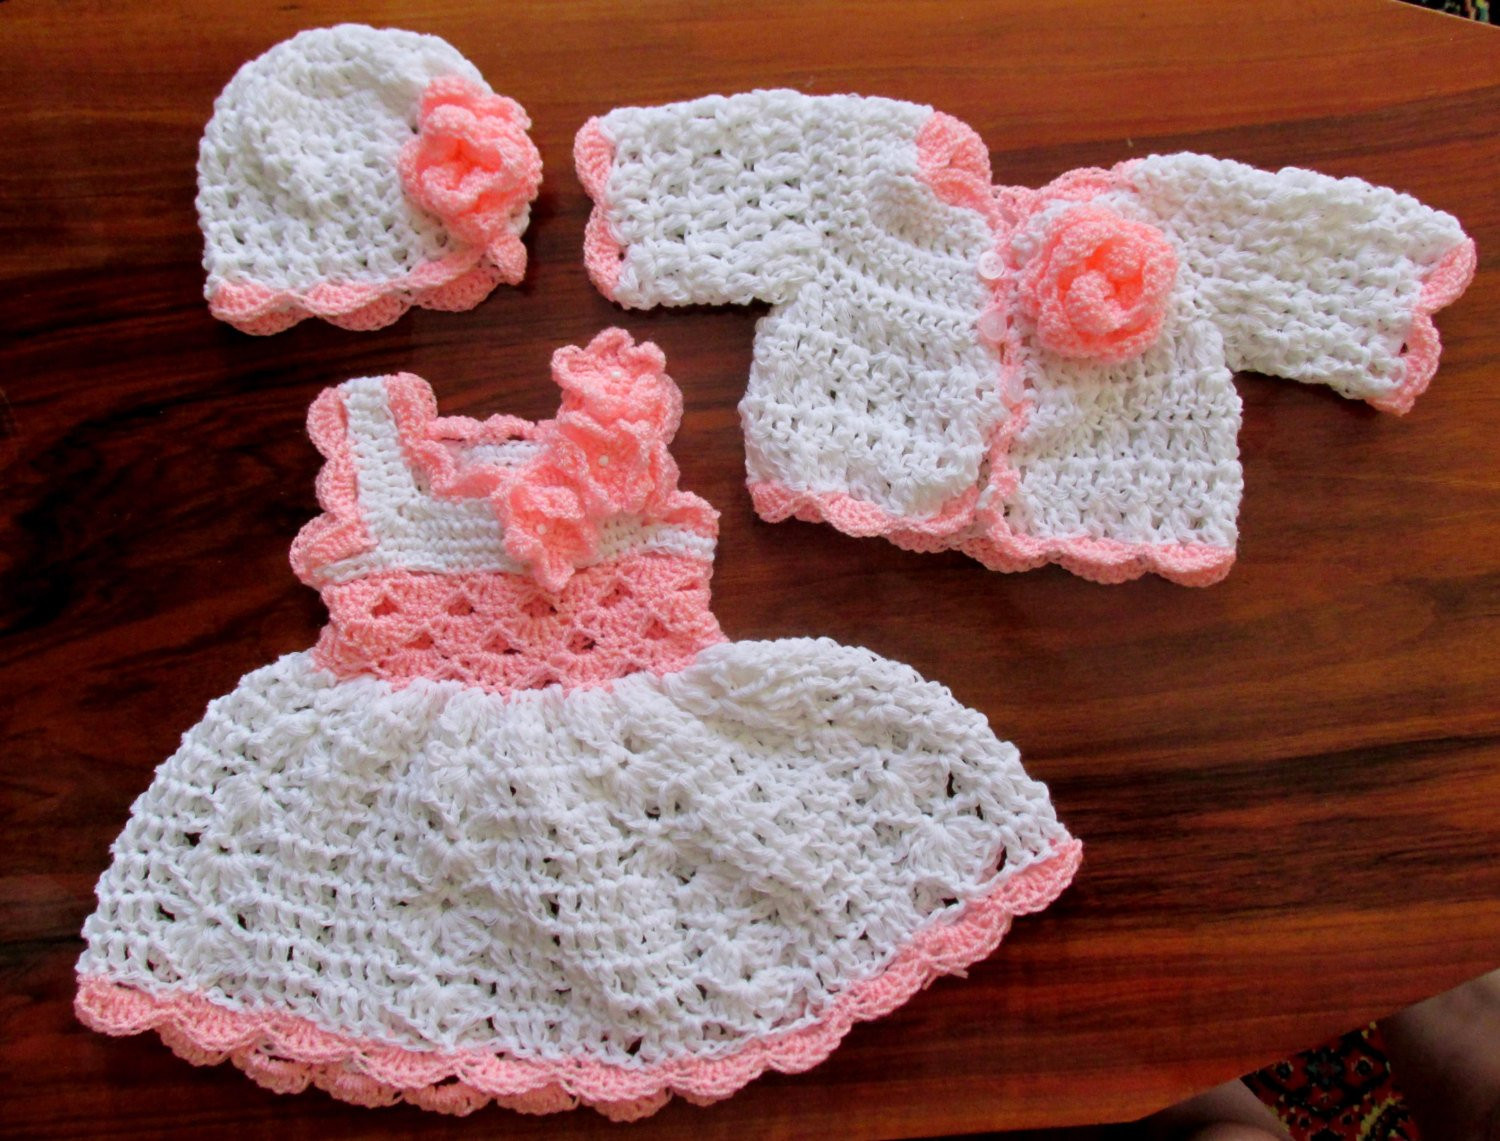 Crochet Baby Clothing Unique Baby Girl Outfit Crochet Baby Outfit White Baby Cardigan Of Amazing 44 Ideas Crochet Baby Clothing